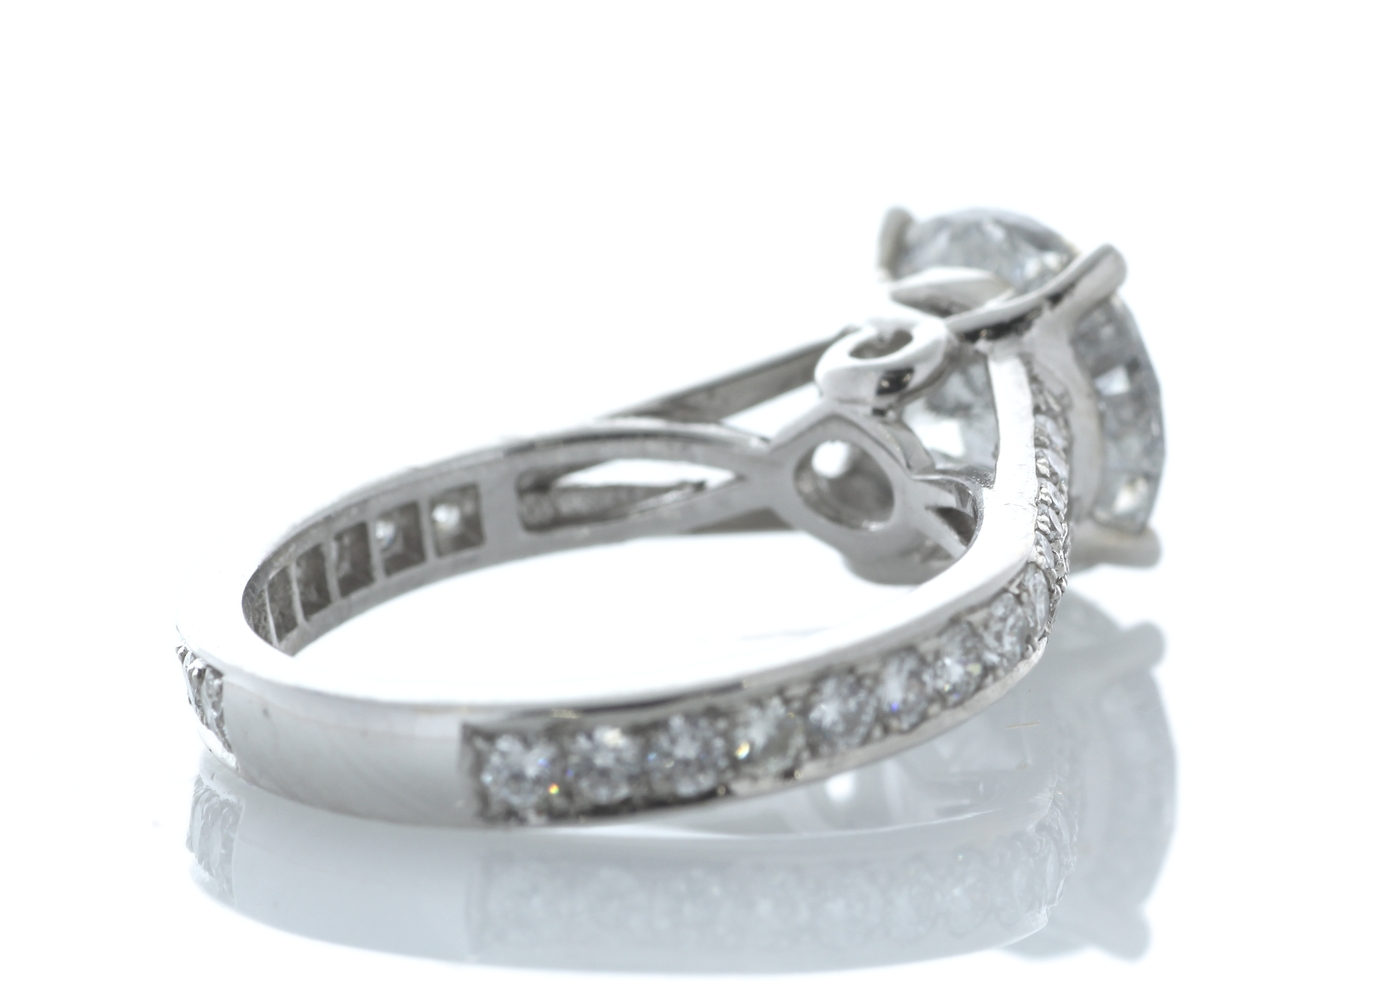 18ct White Gold Stone Set Shoulders Diamond Ring 3.67 Carats - Image 3 of 4